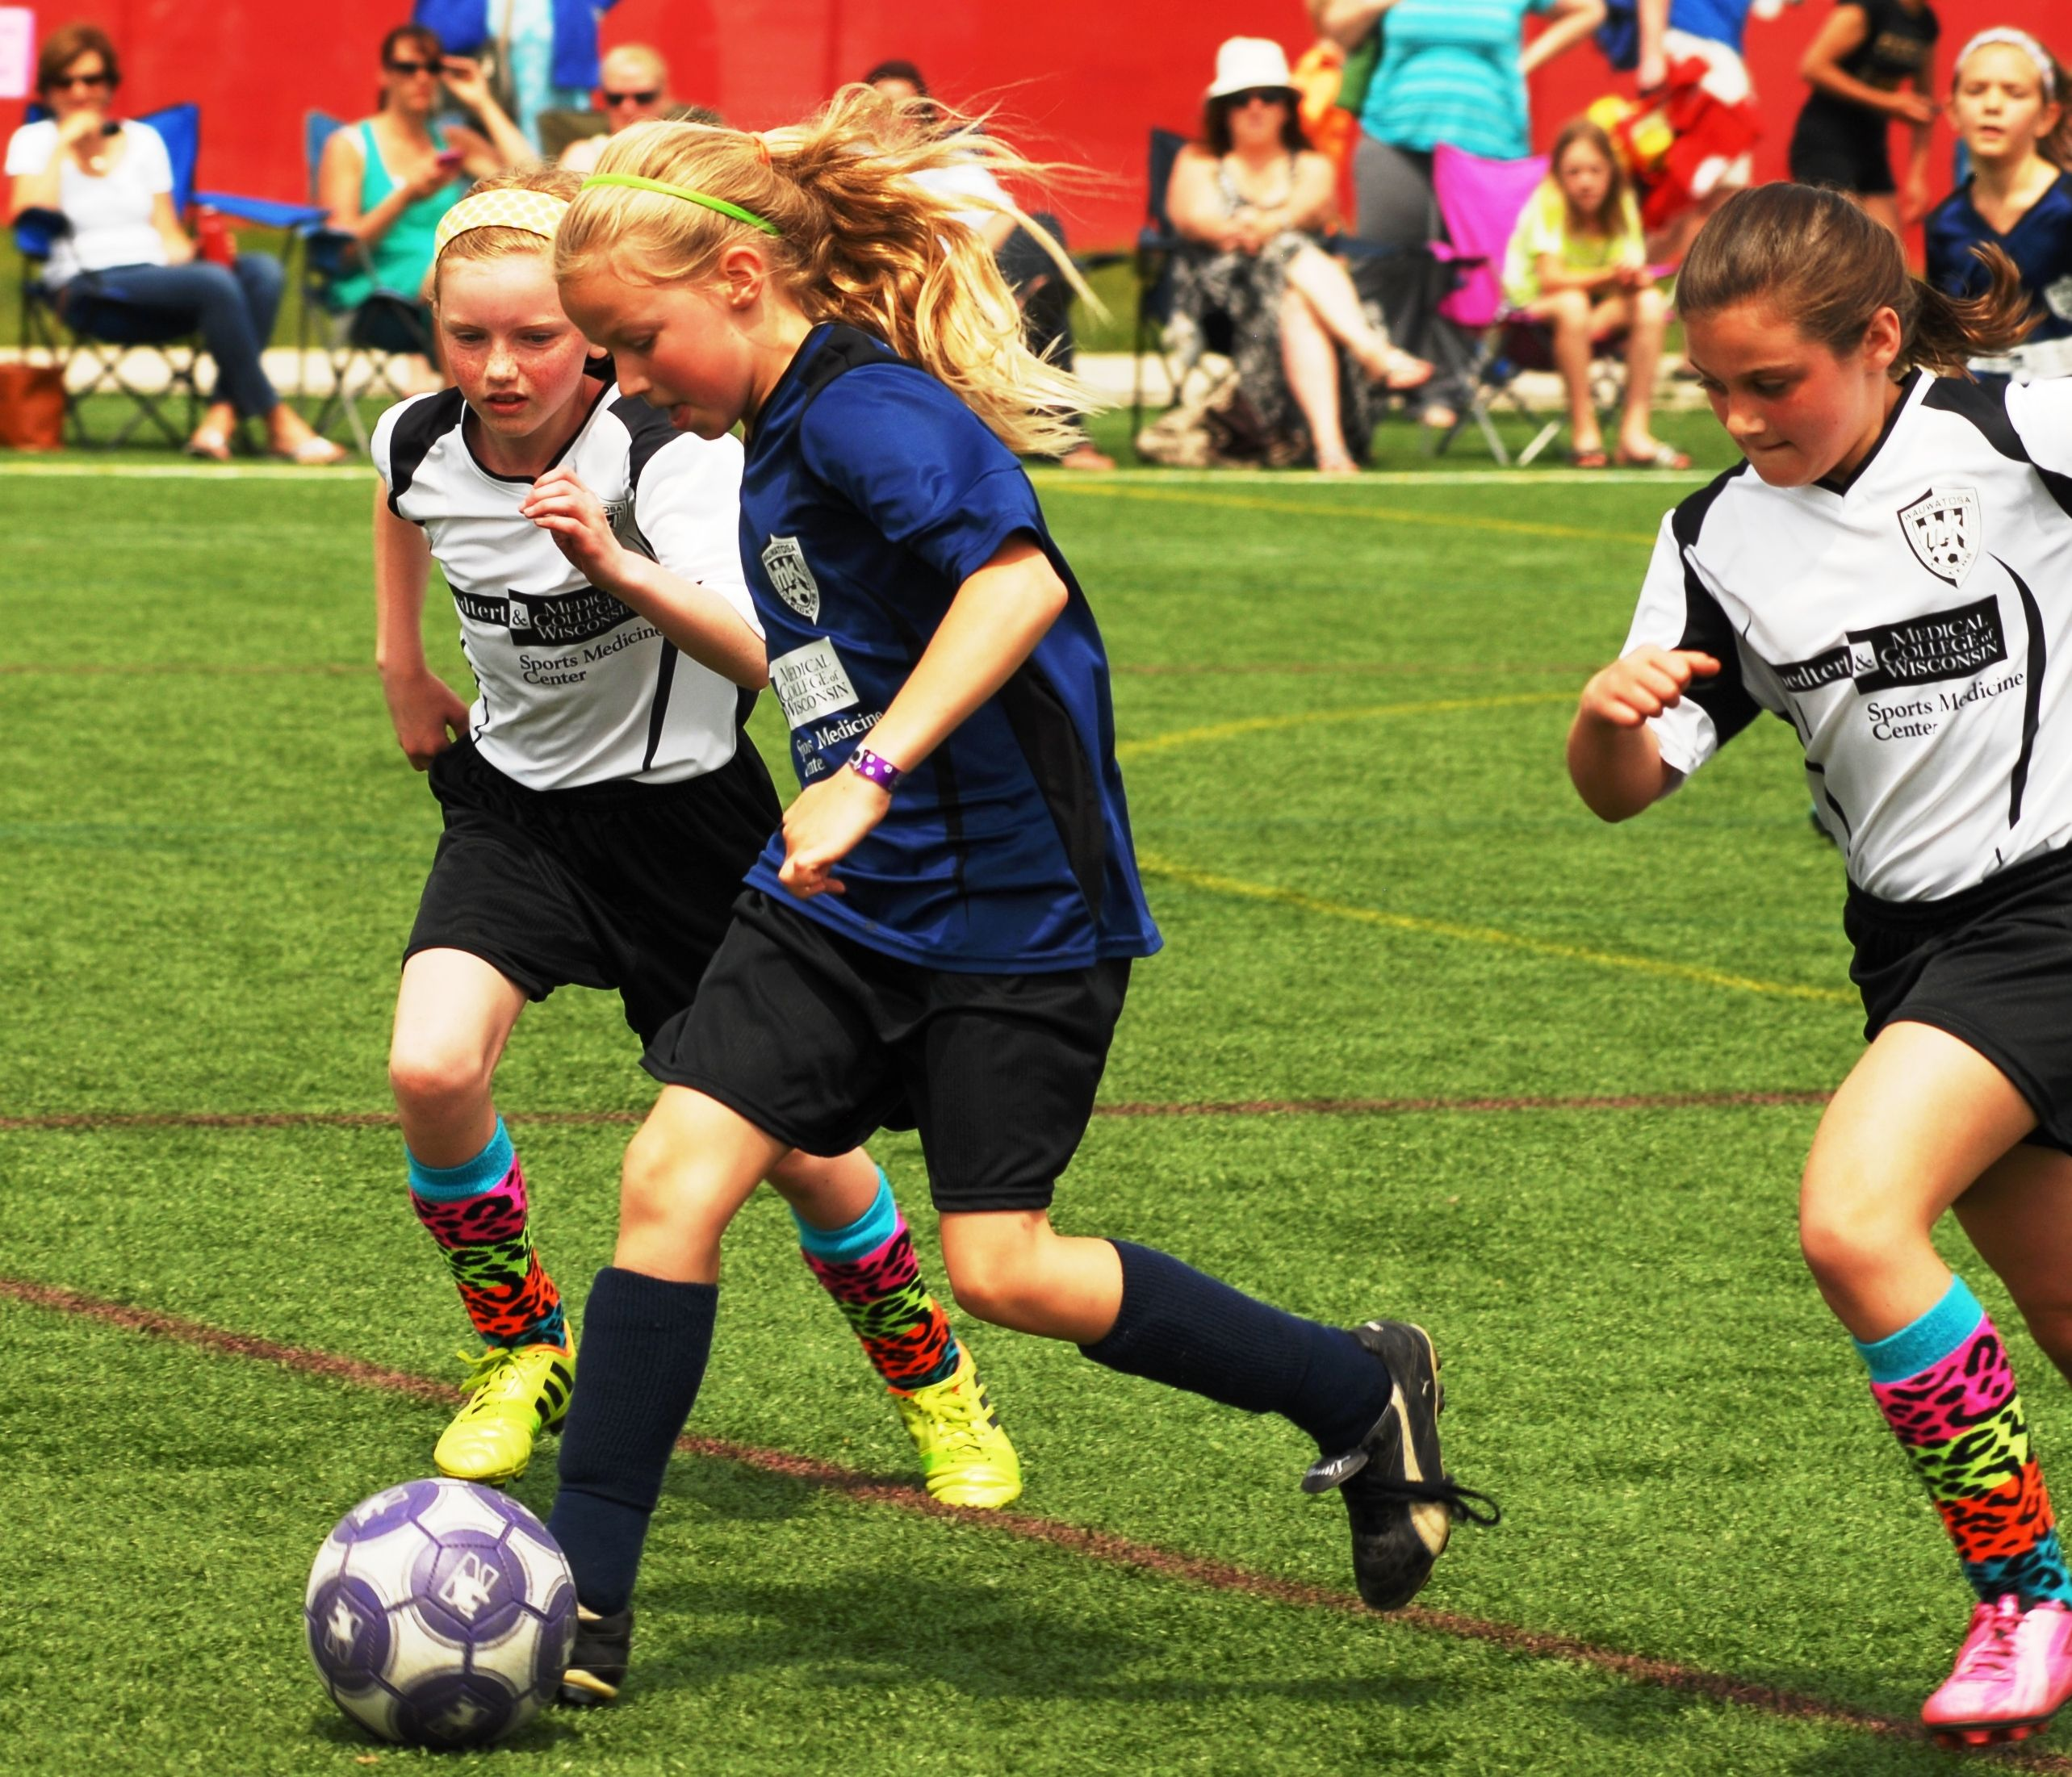 Recreational Soccer (ages 1114) for more advanced players